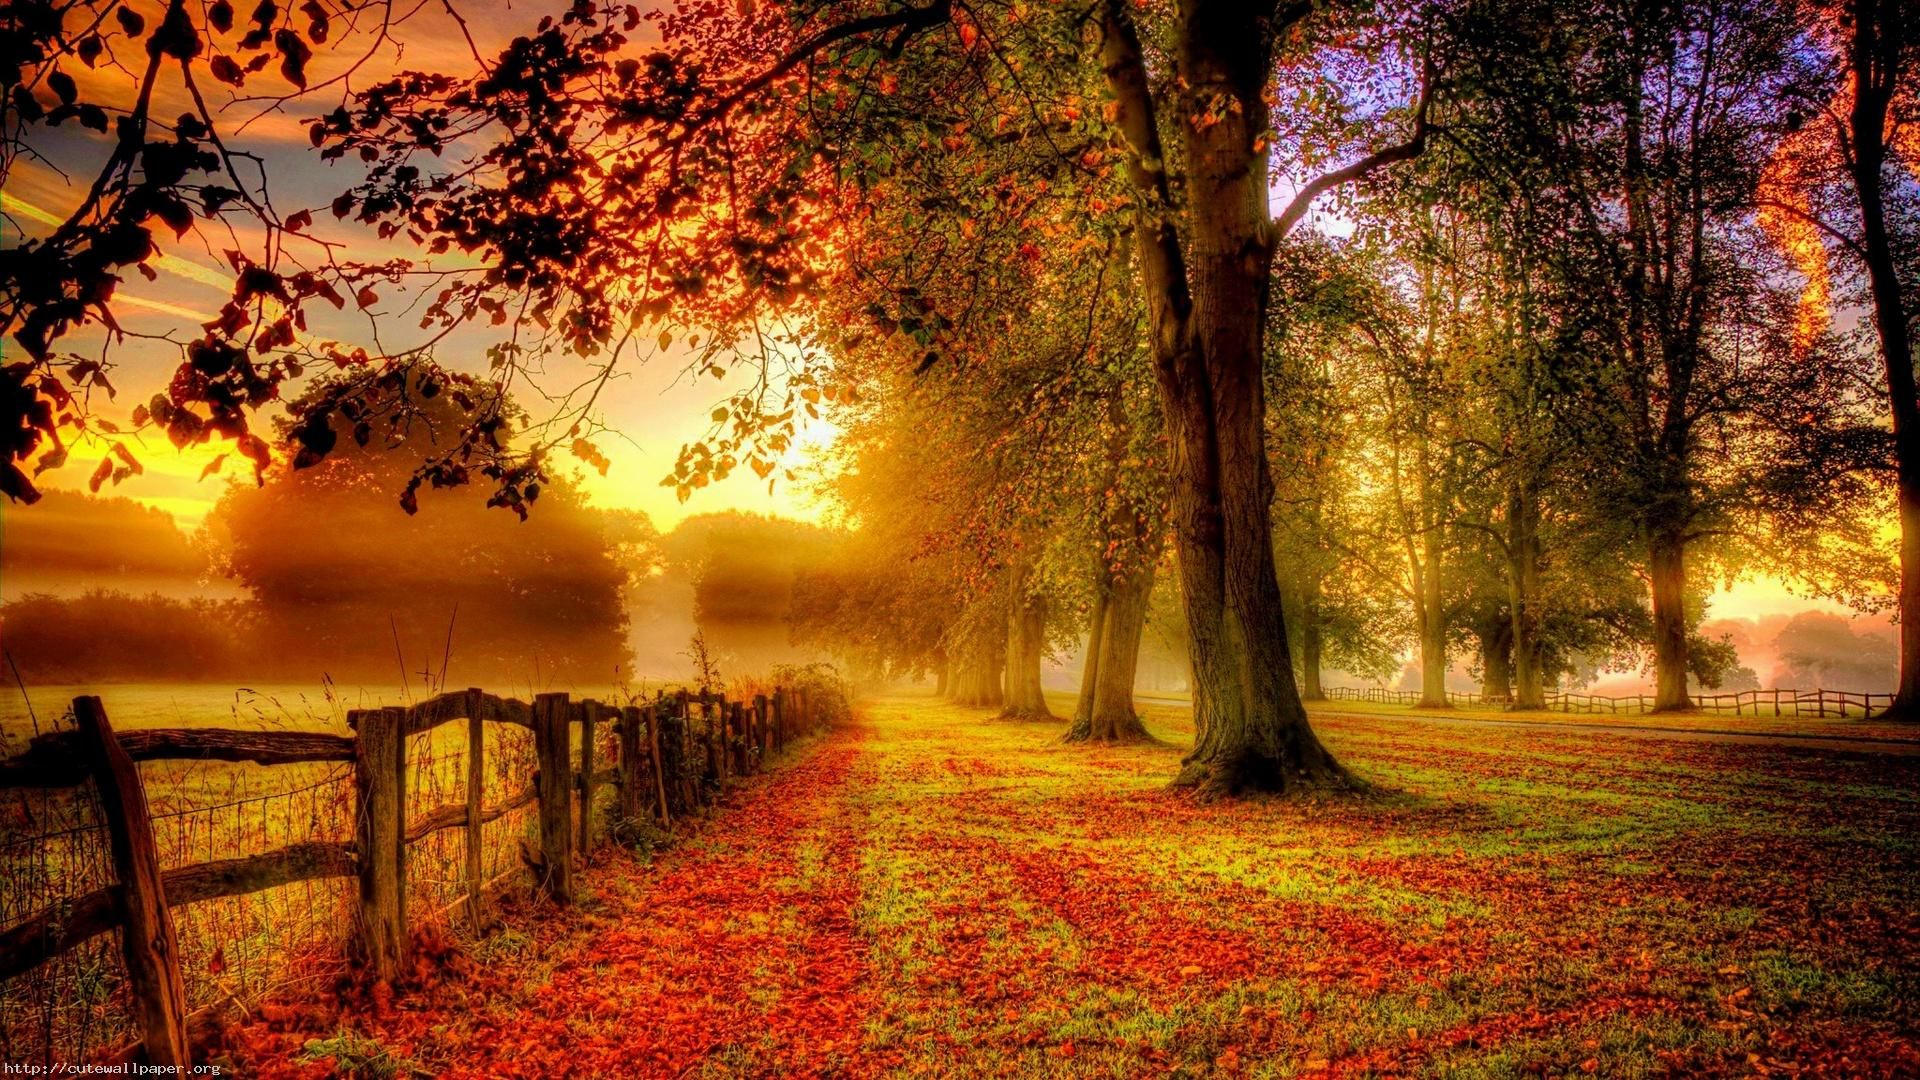 Autumn Images Wallpapers And Backgrounds